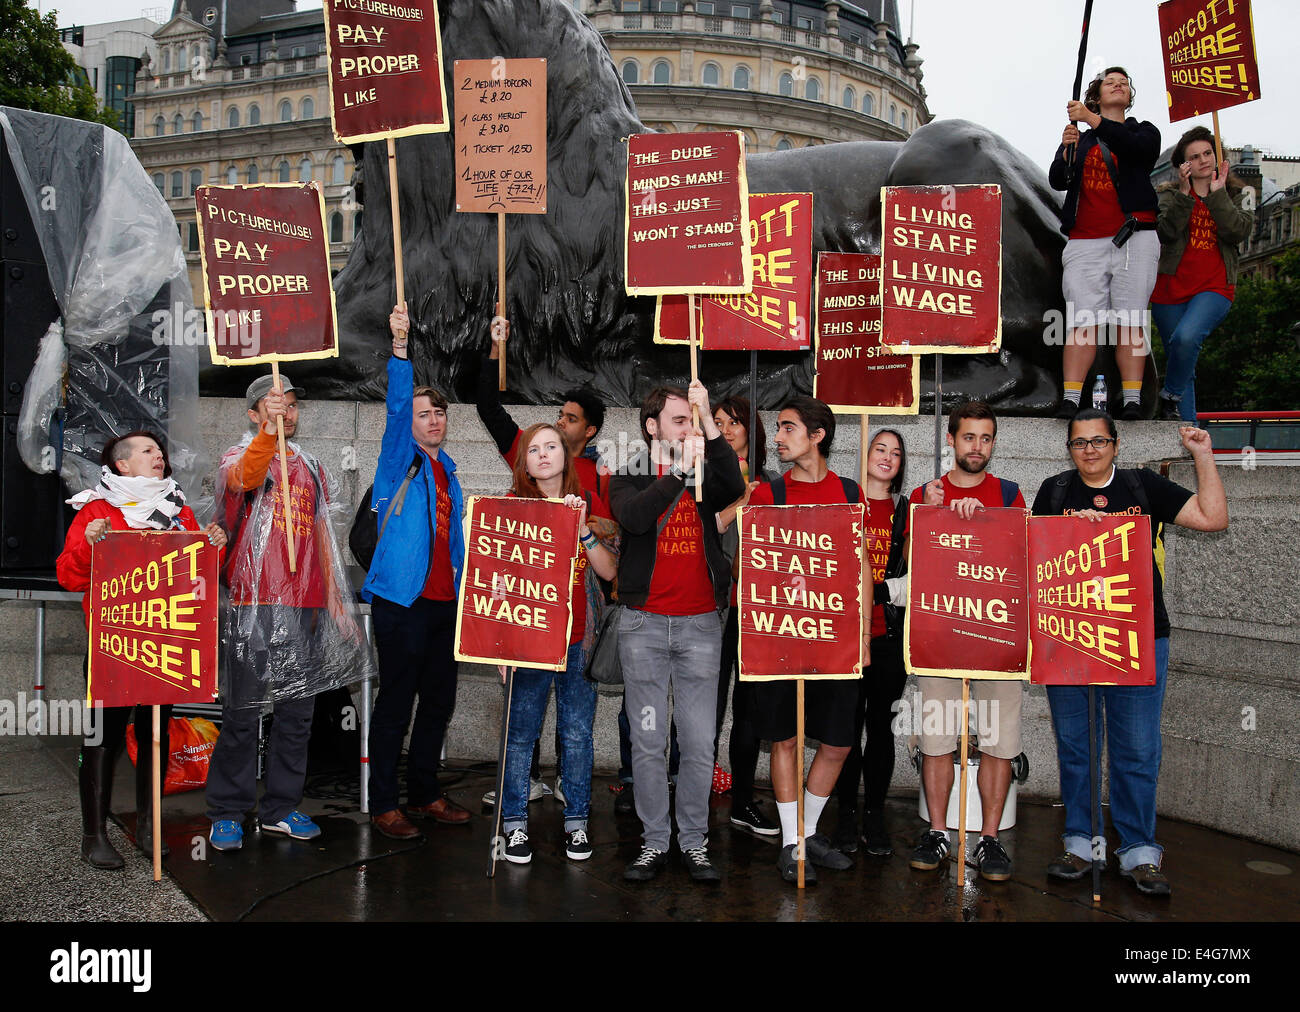 Members of Ritzy Cinema demonstrate for all staff to earn at least the London Living Wage in London. 10.07.2014. - Stock Image